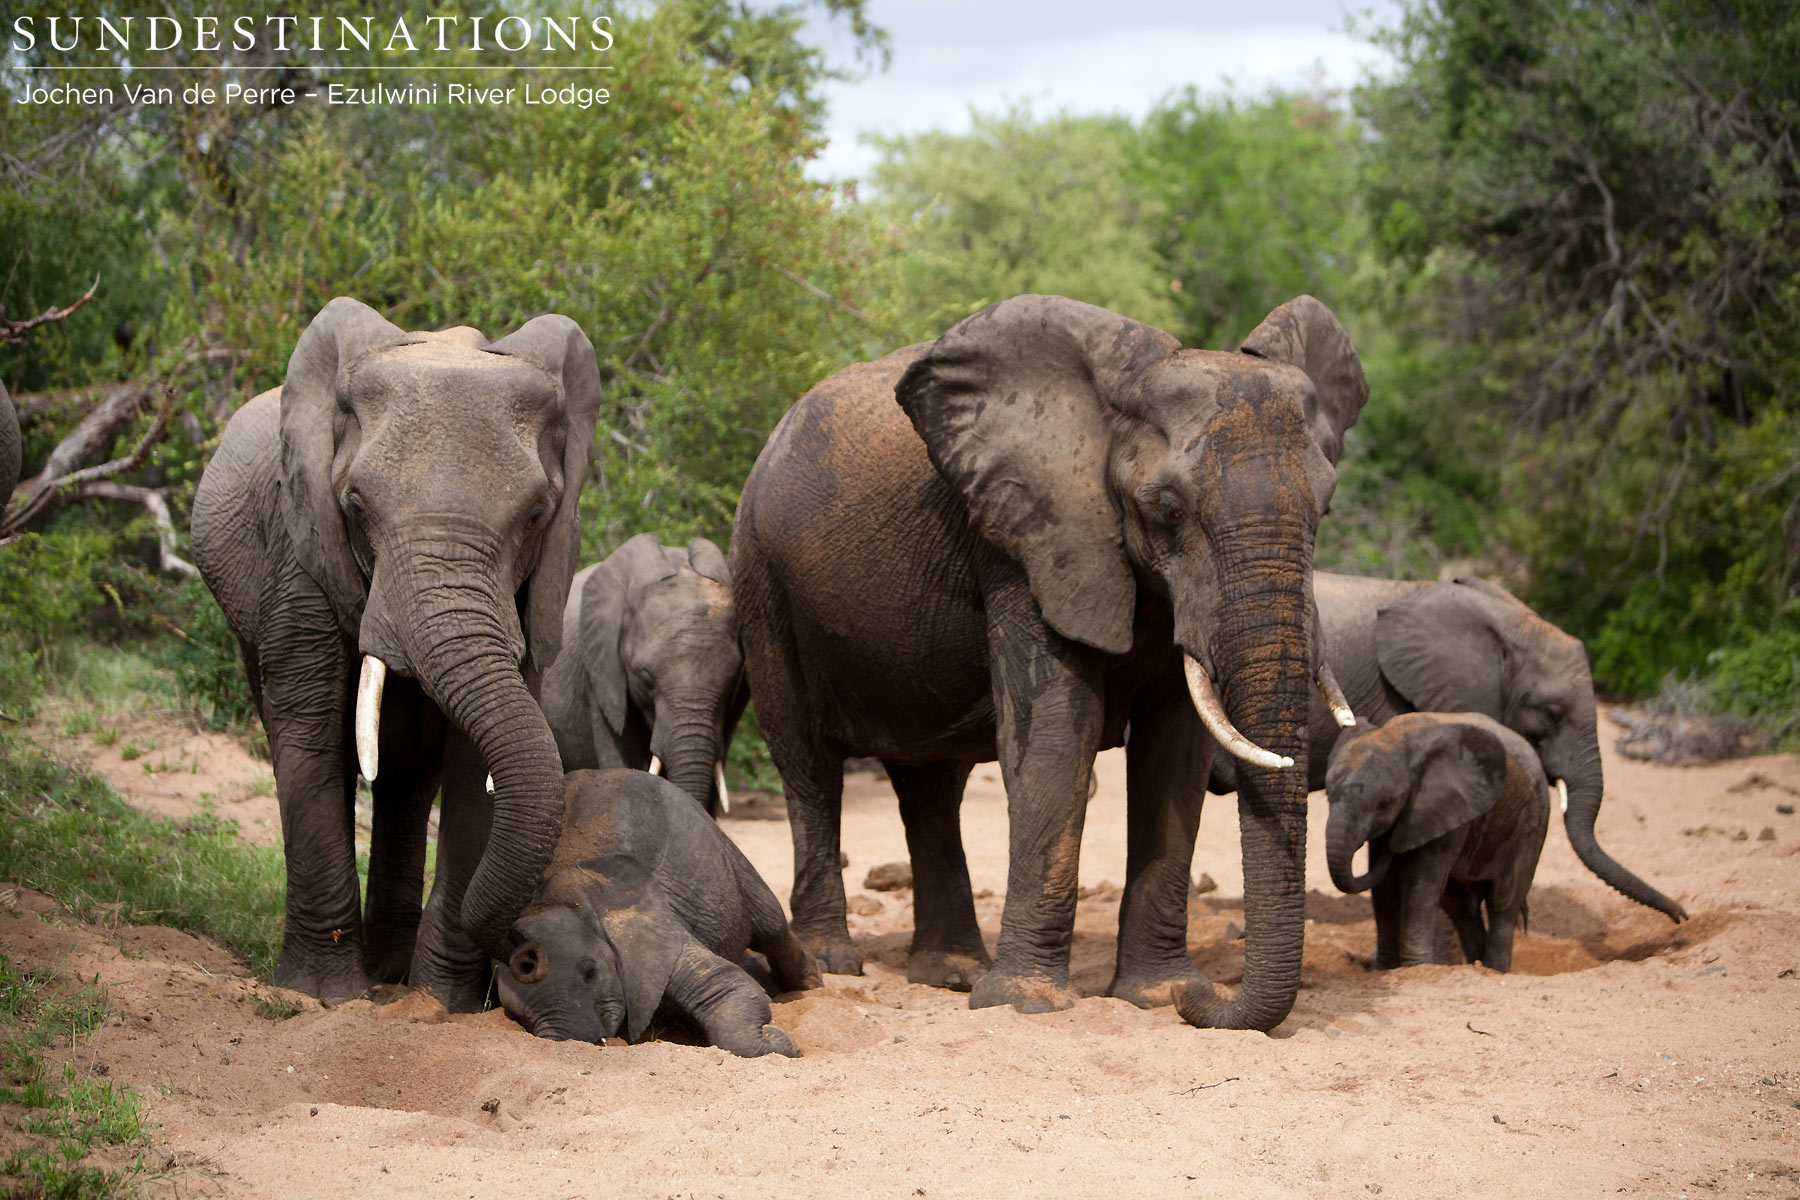 Elephants digging for water at Ezulwini